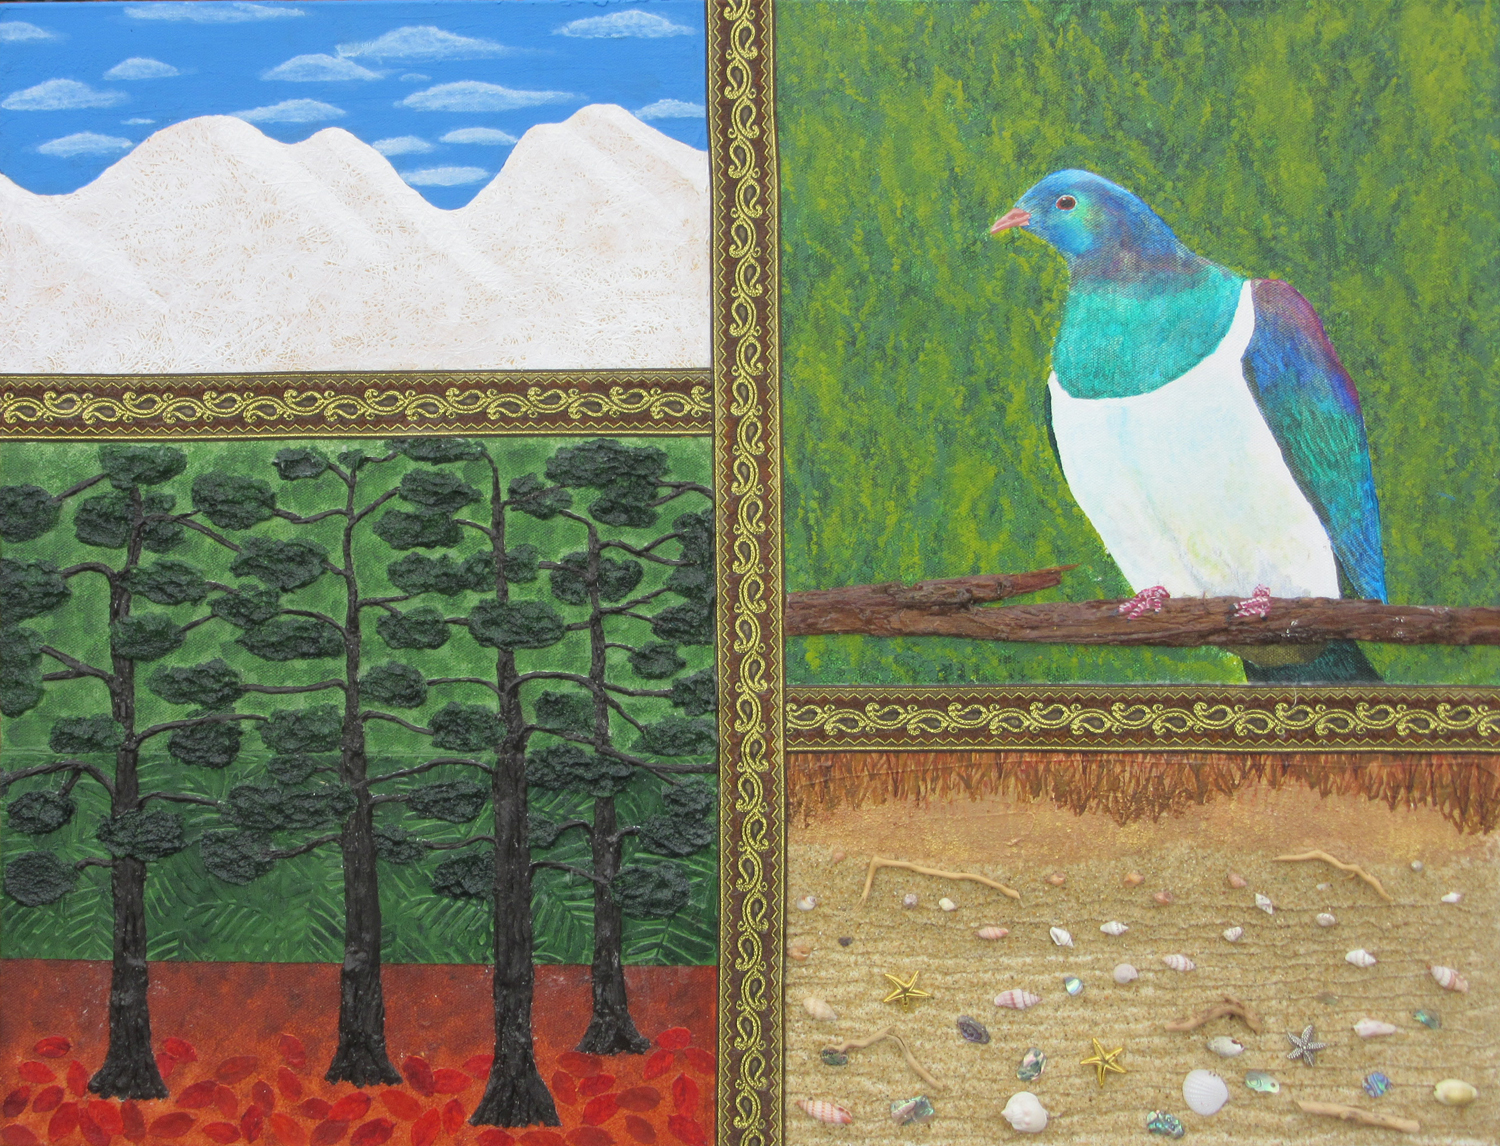 Bernard Carroll, mixed media, mountains, forest, kereru